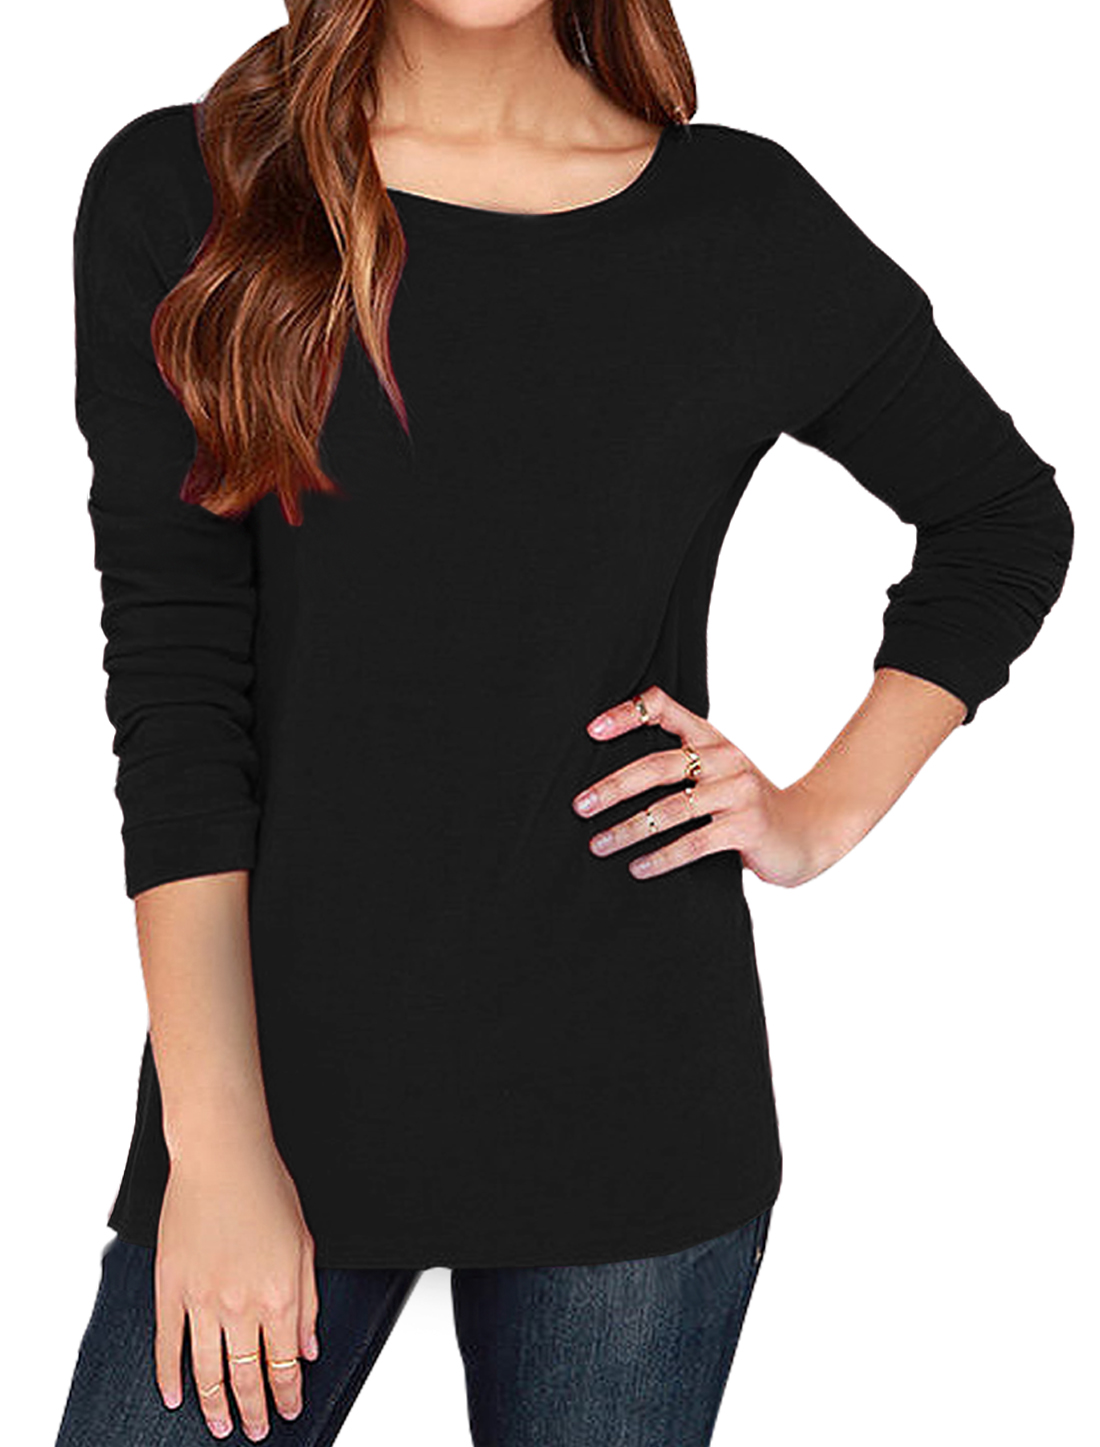 Lady Round Neck Long Sleeves Drop Shoulder Open Back Tunic Top Black M